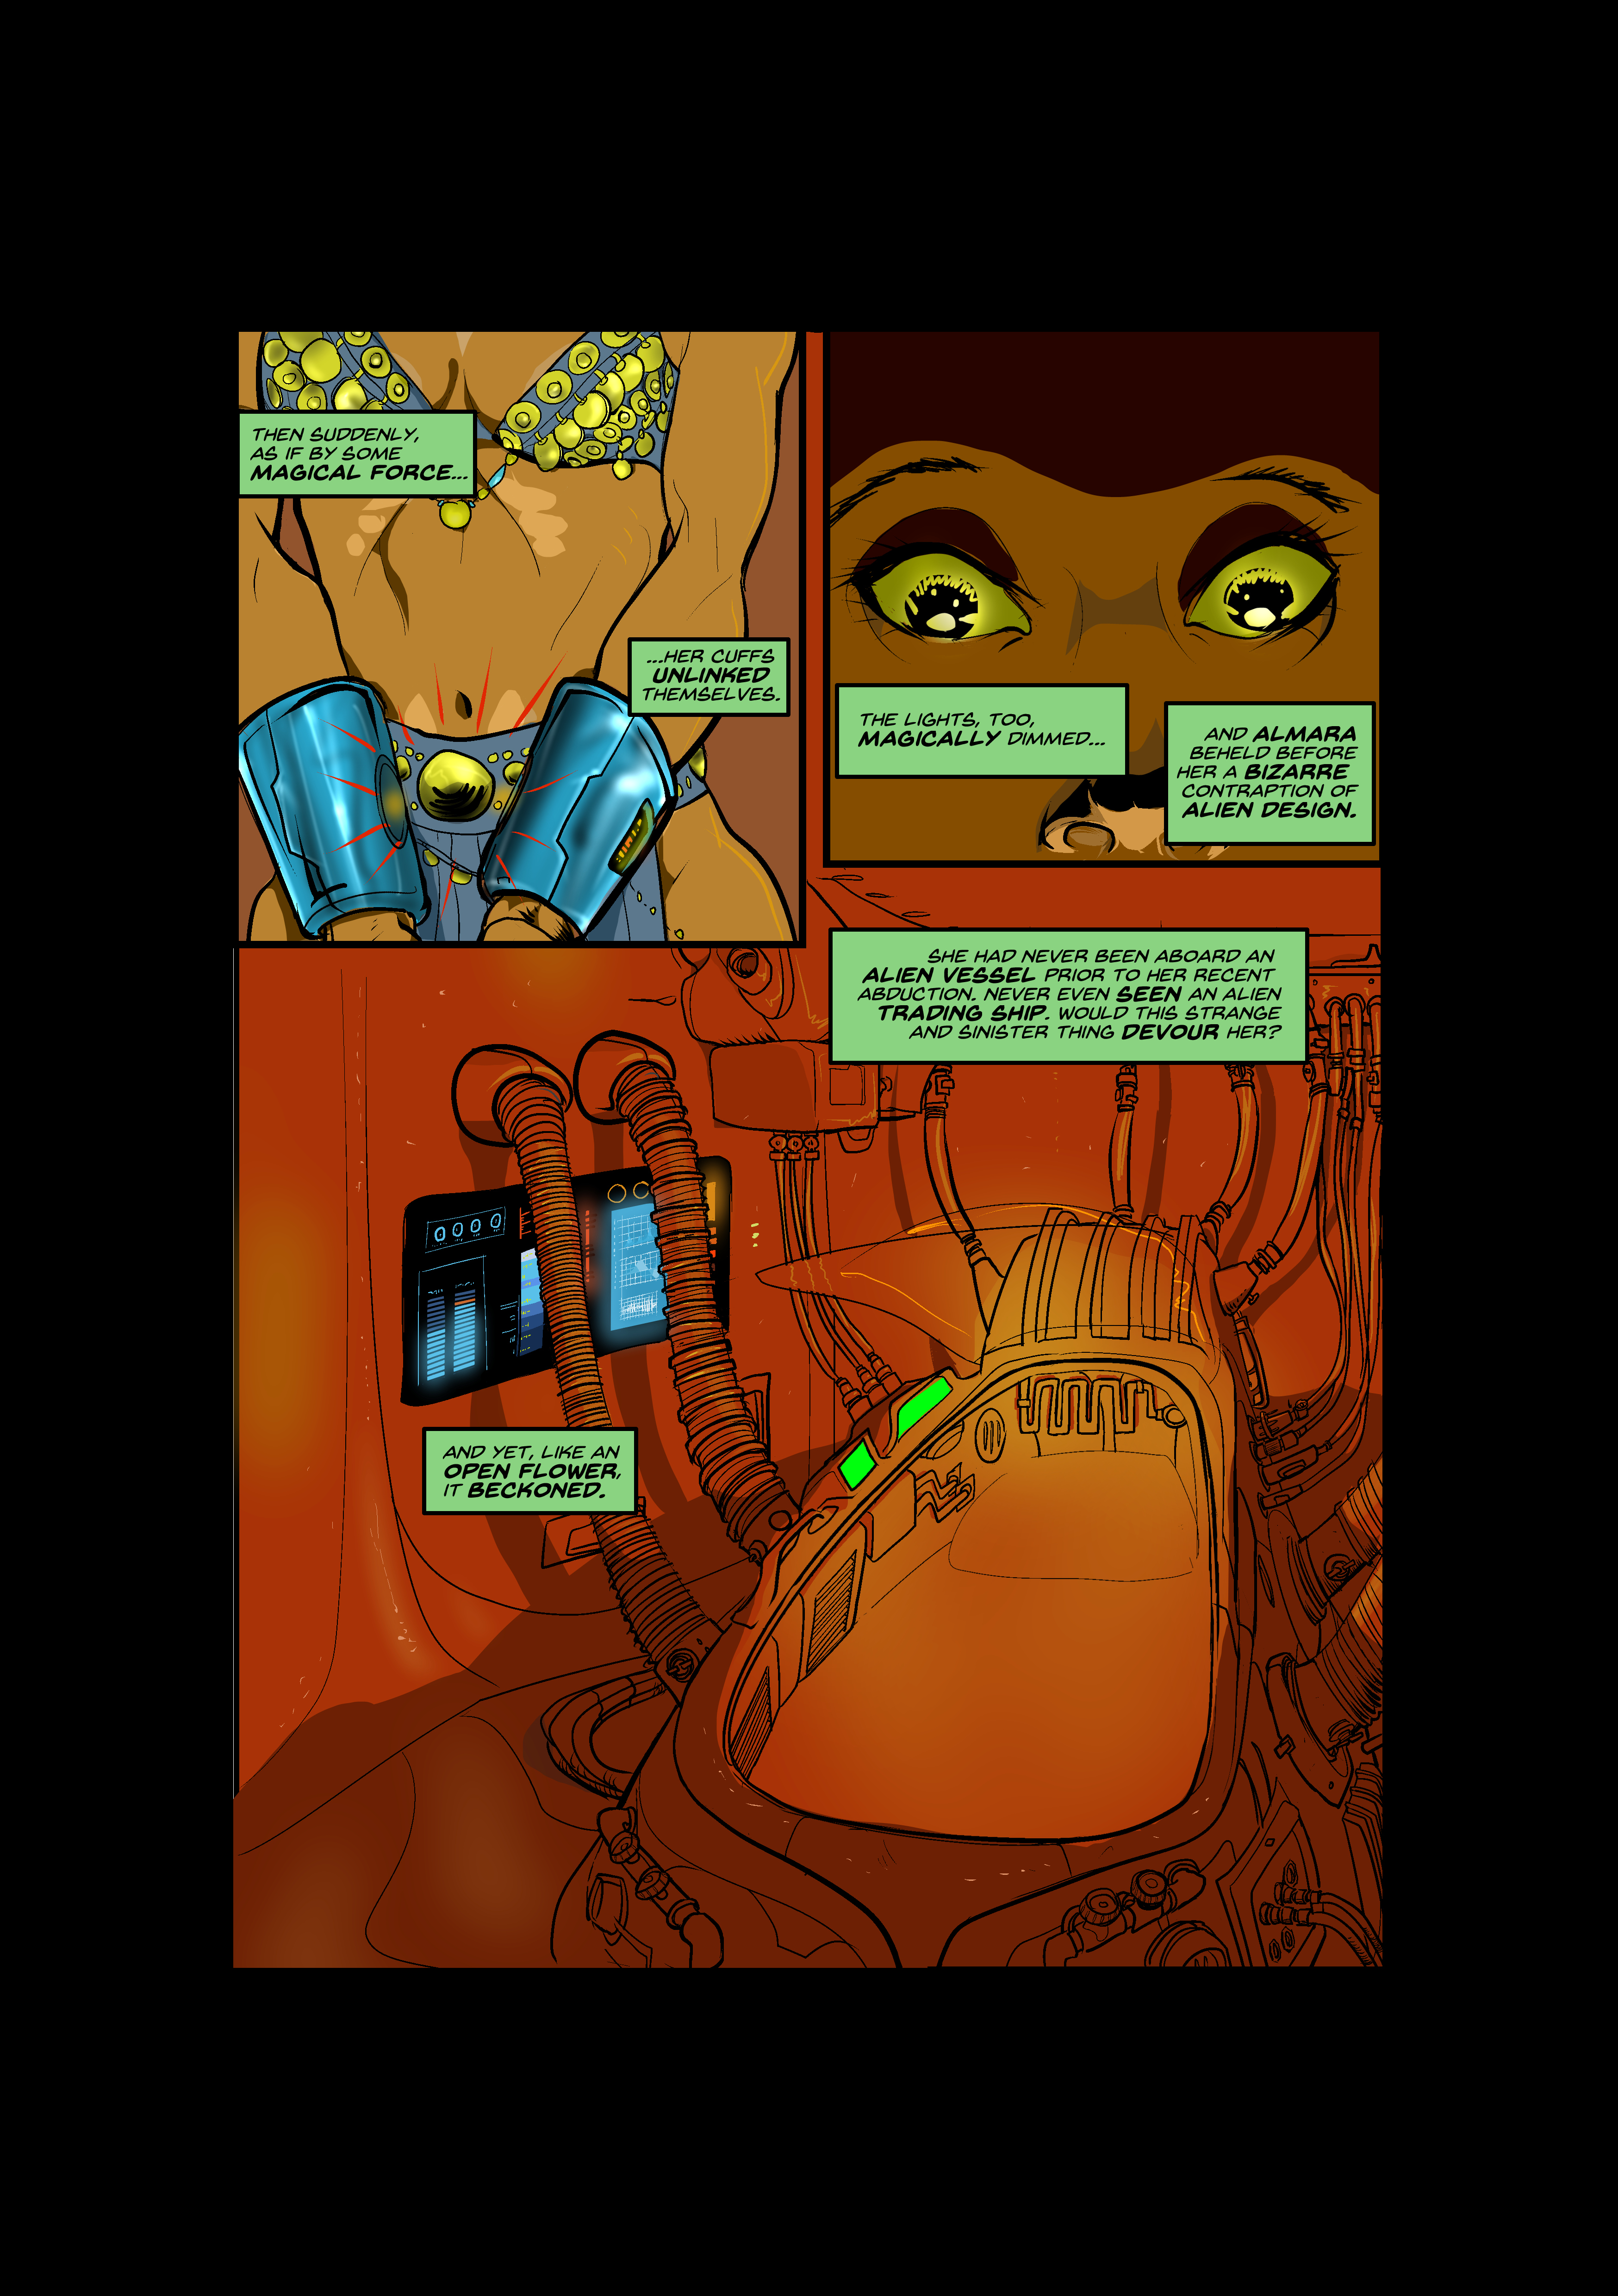 Prince of the Astral Kingdom chapter 2 pg 43